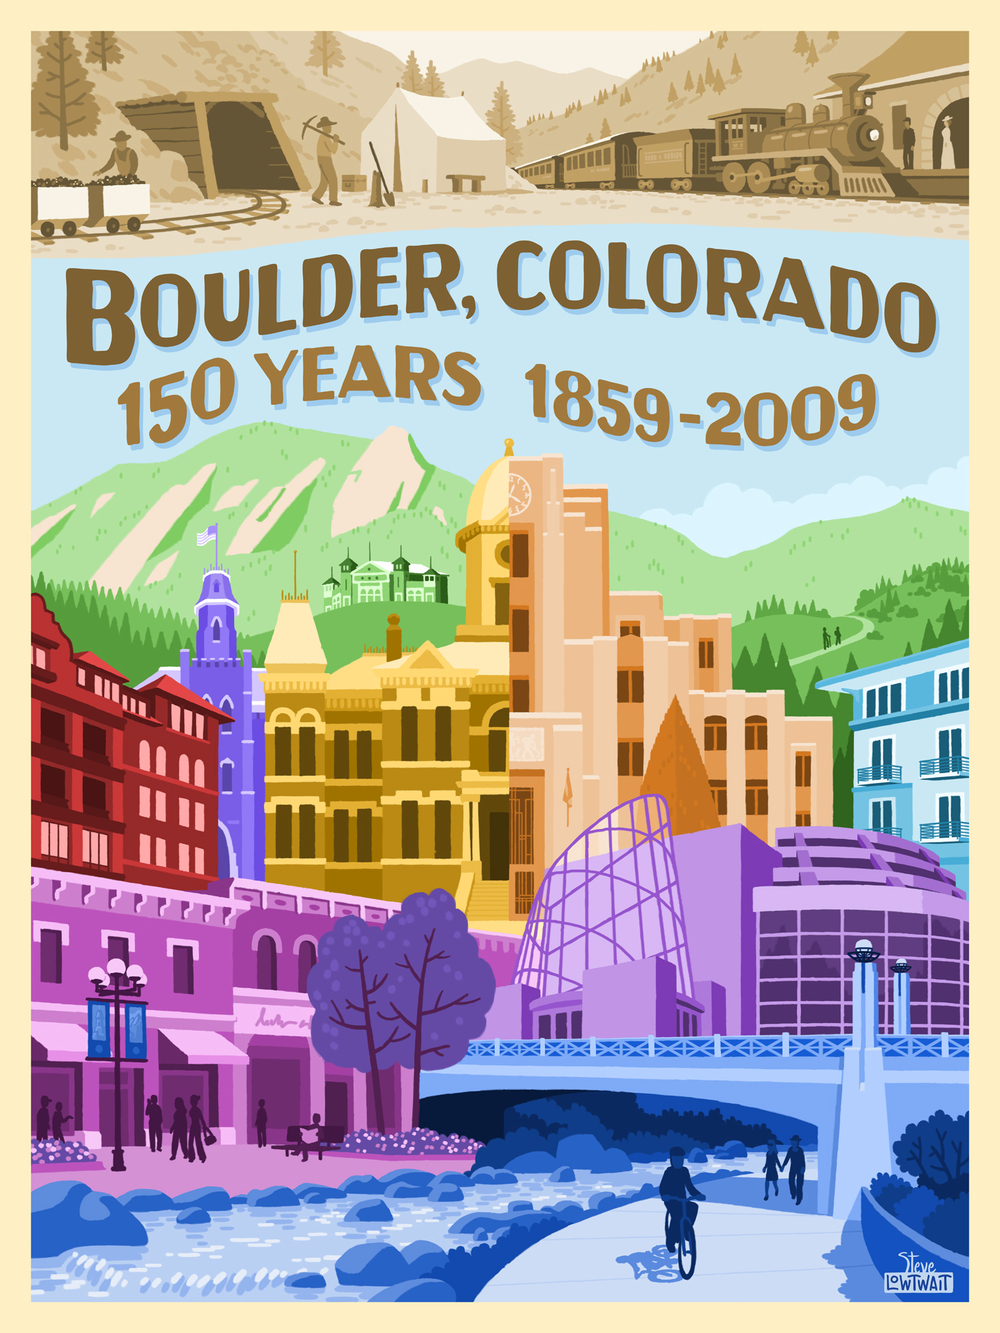 Boulder 150 Years • A poster that captures the landmark structures of Boulder's history, from mining to modern. Client: Boulder Sesquicentennial